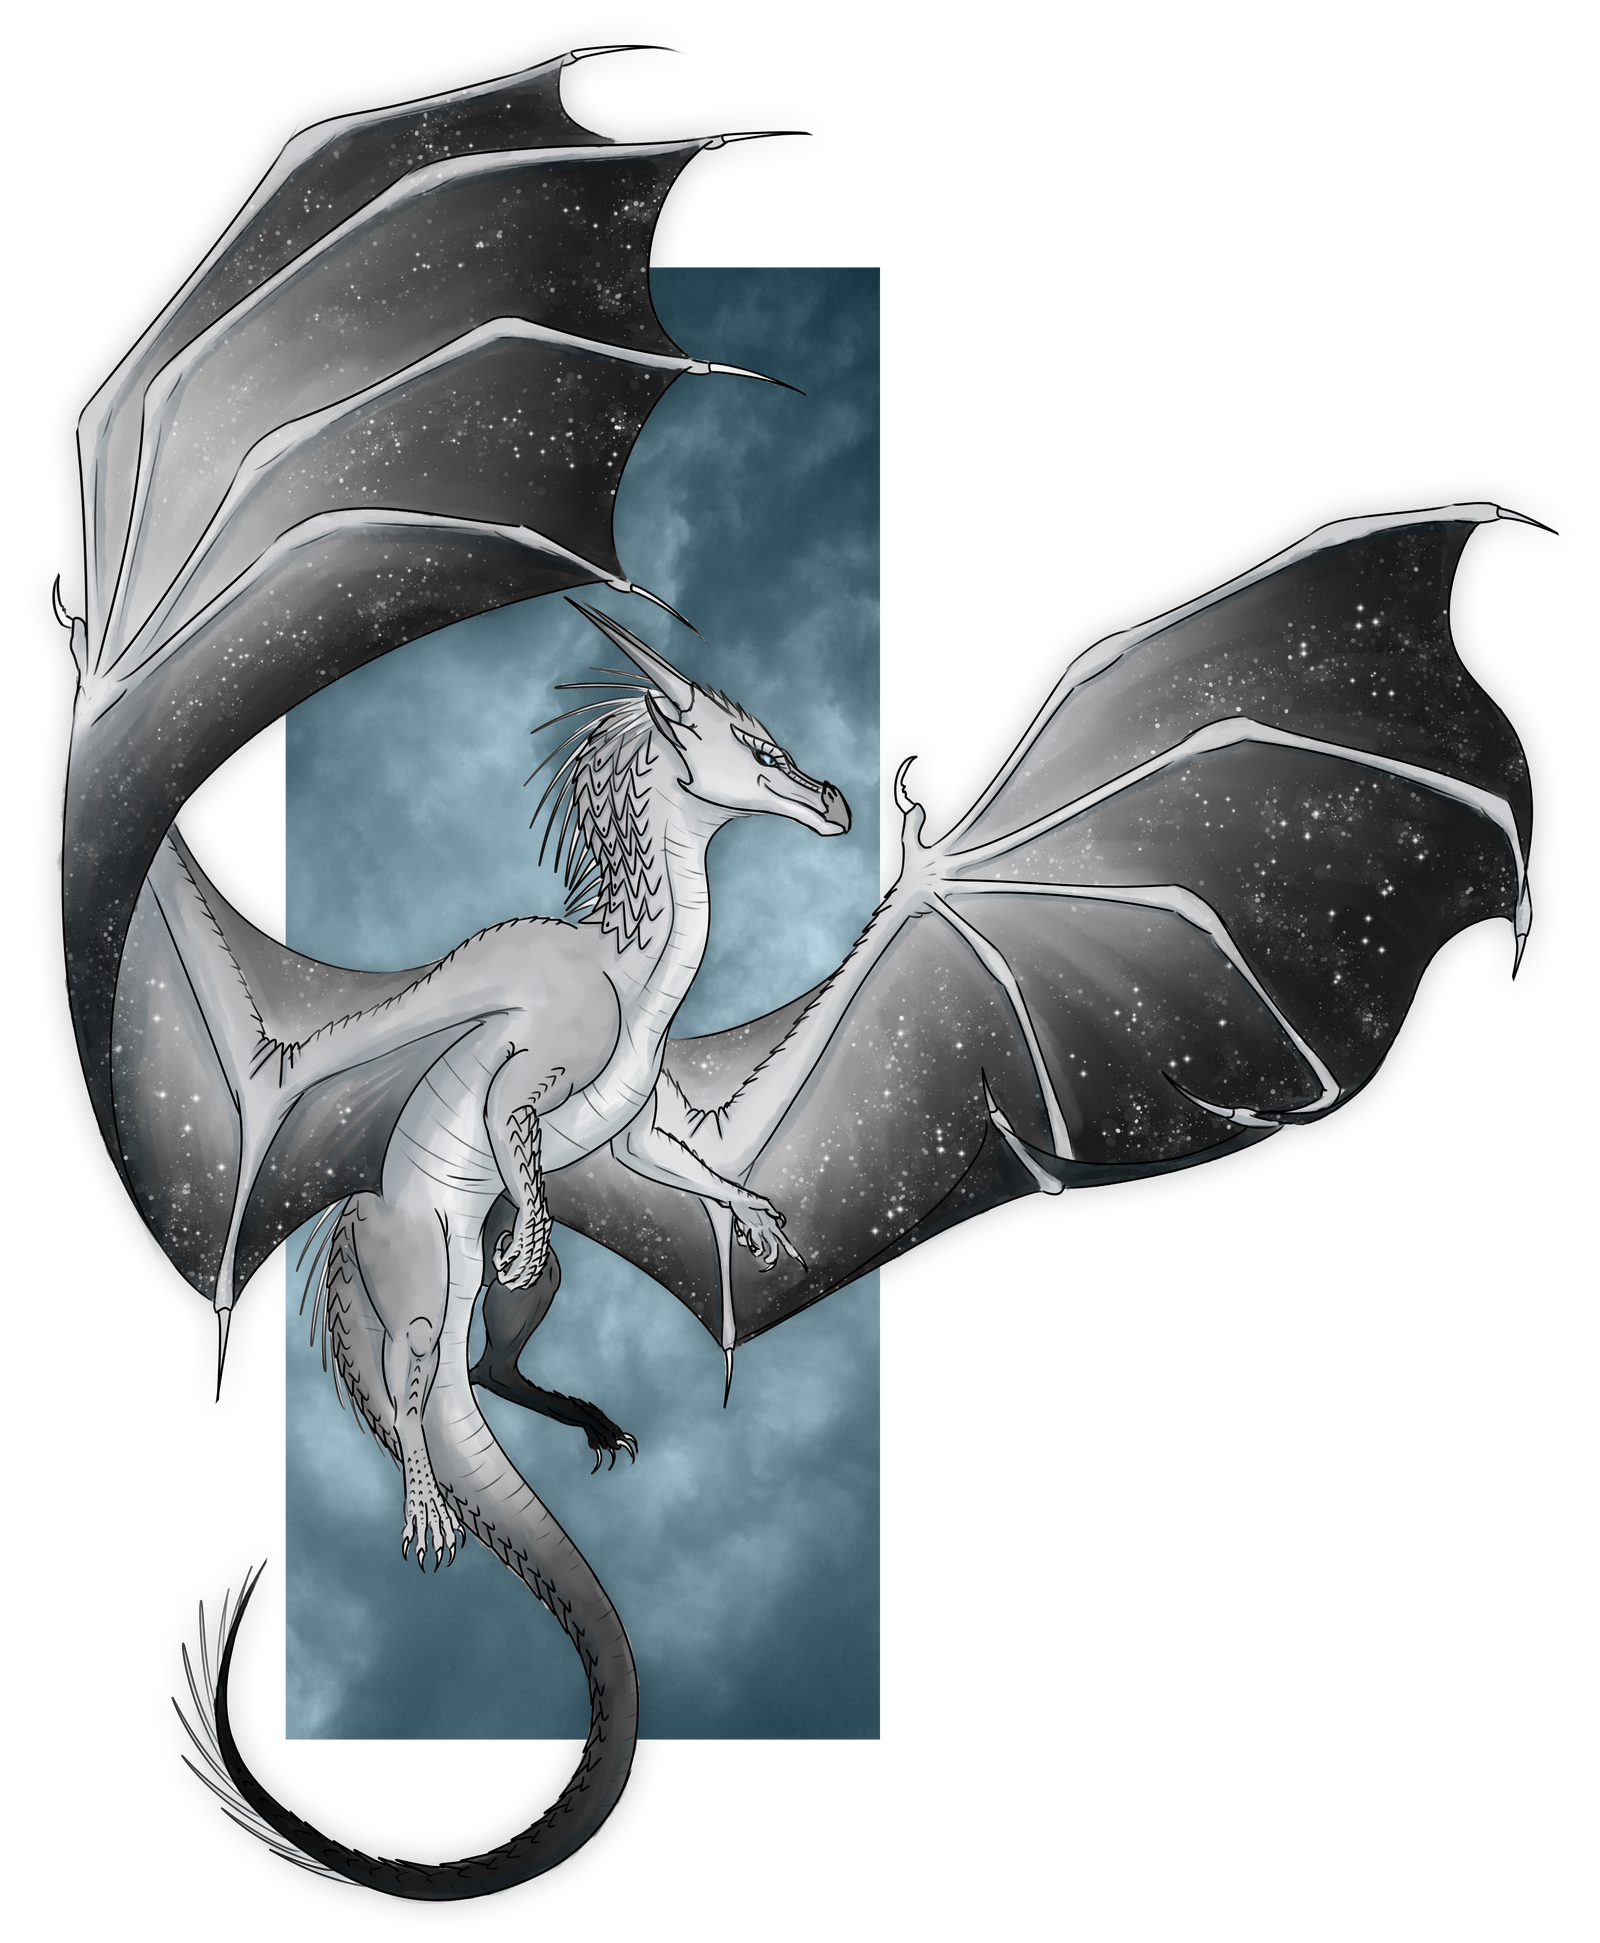 the_sky_is_overcasted_by_xthedragonrebornx-dafamtl.png